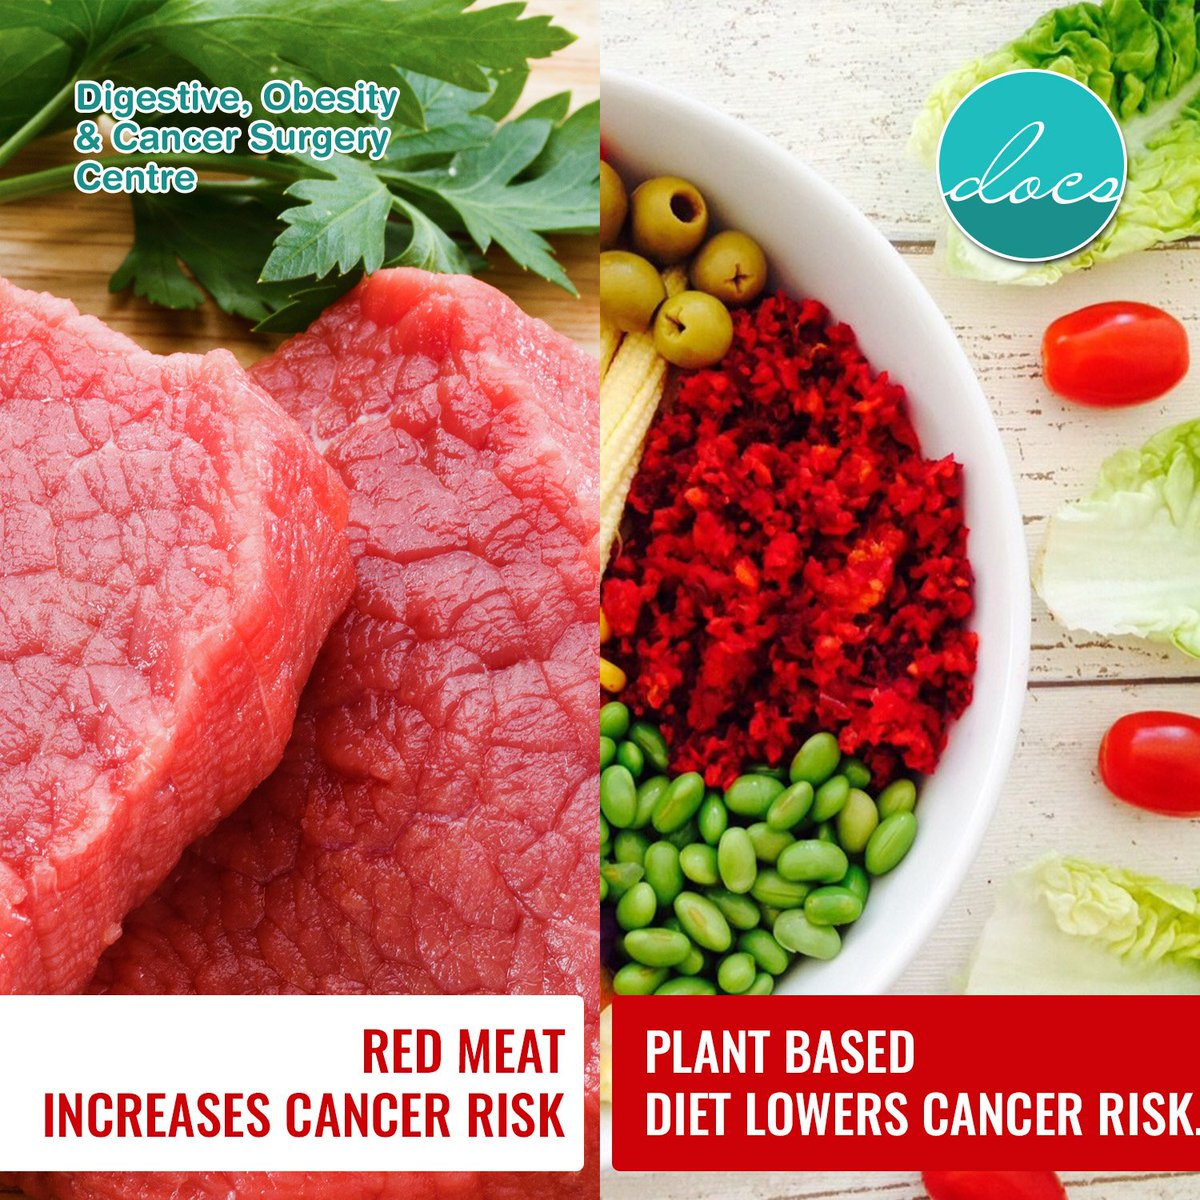 Dr Rajesh Bhojwani On Twitter Docs Drrajeshbhojwani A Study Shows That Eating Meat Increases The Risk Of Colon Cancer Whereas Plant Based Diet Lowers The Risk Https T Co Axjaznvf9y